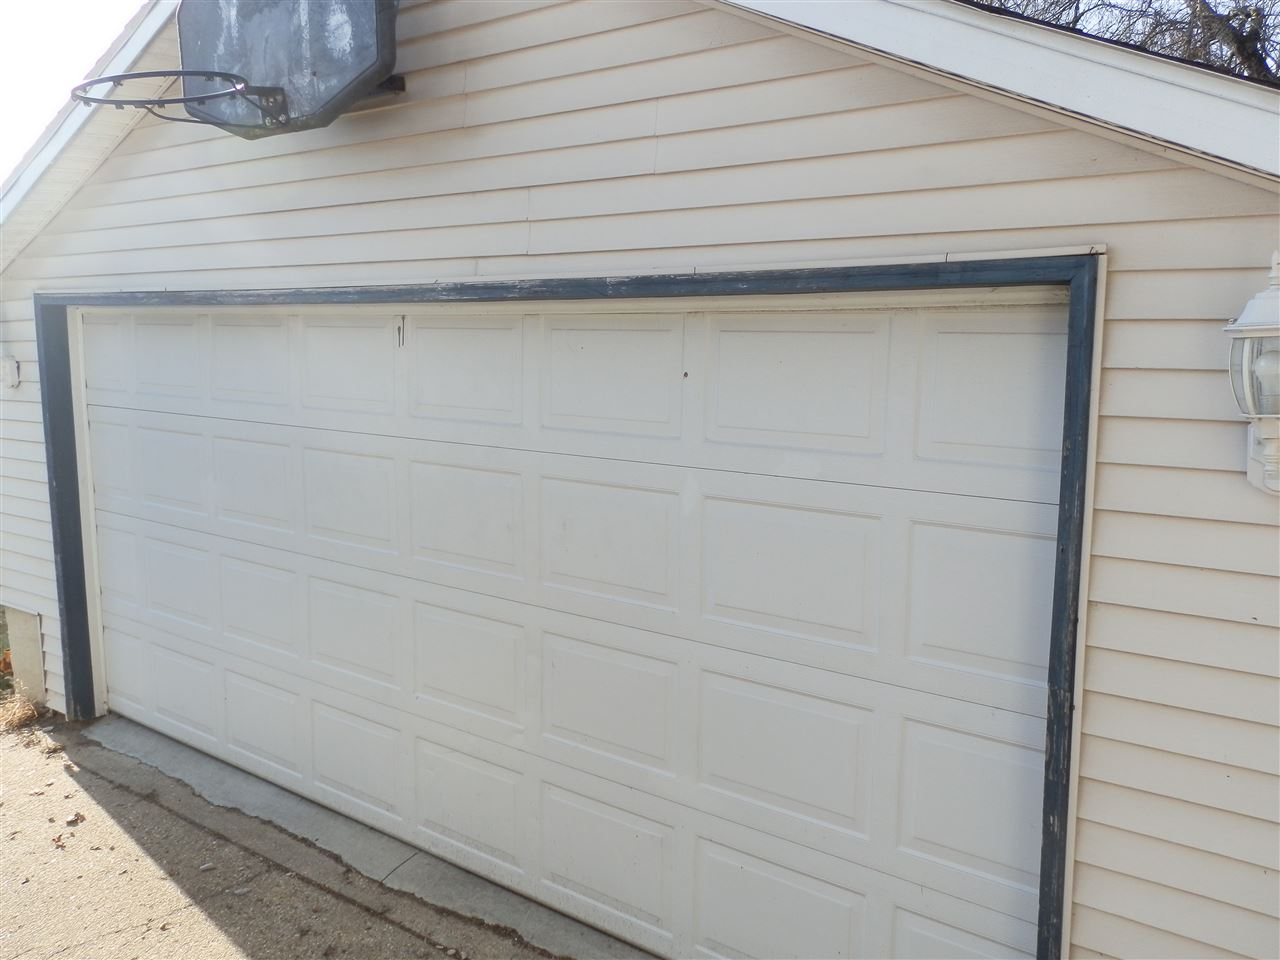 Garage Builders Janesville Wi Gazettextra Homes Janesville Real Estate Janesville Homes For Sale